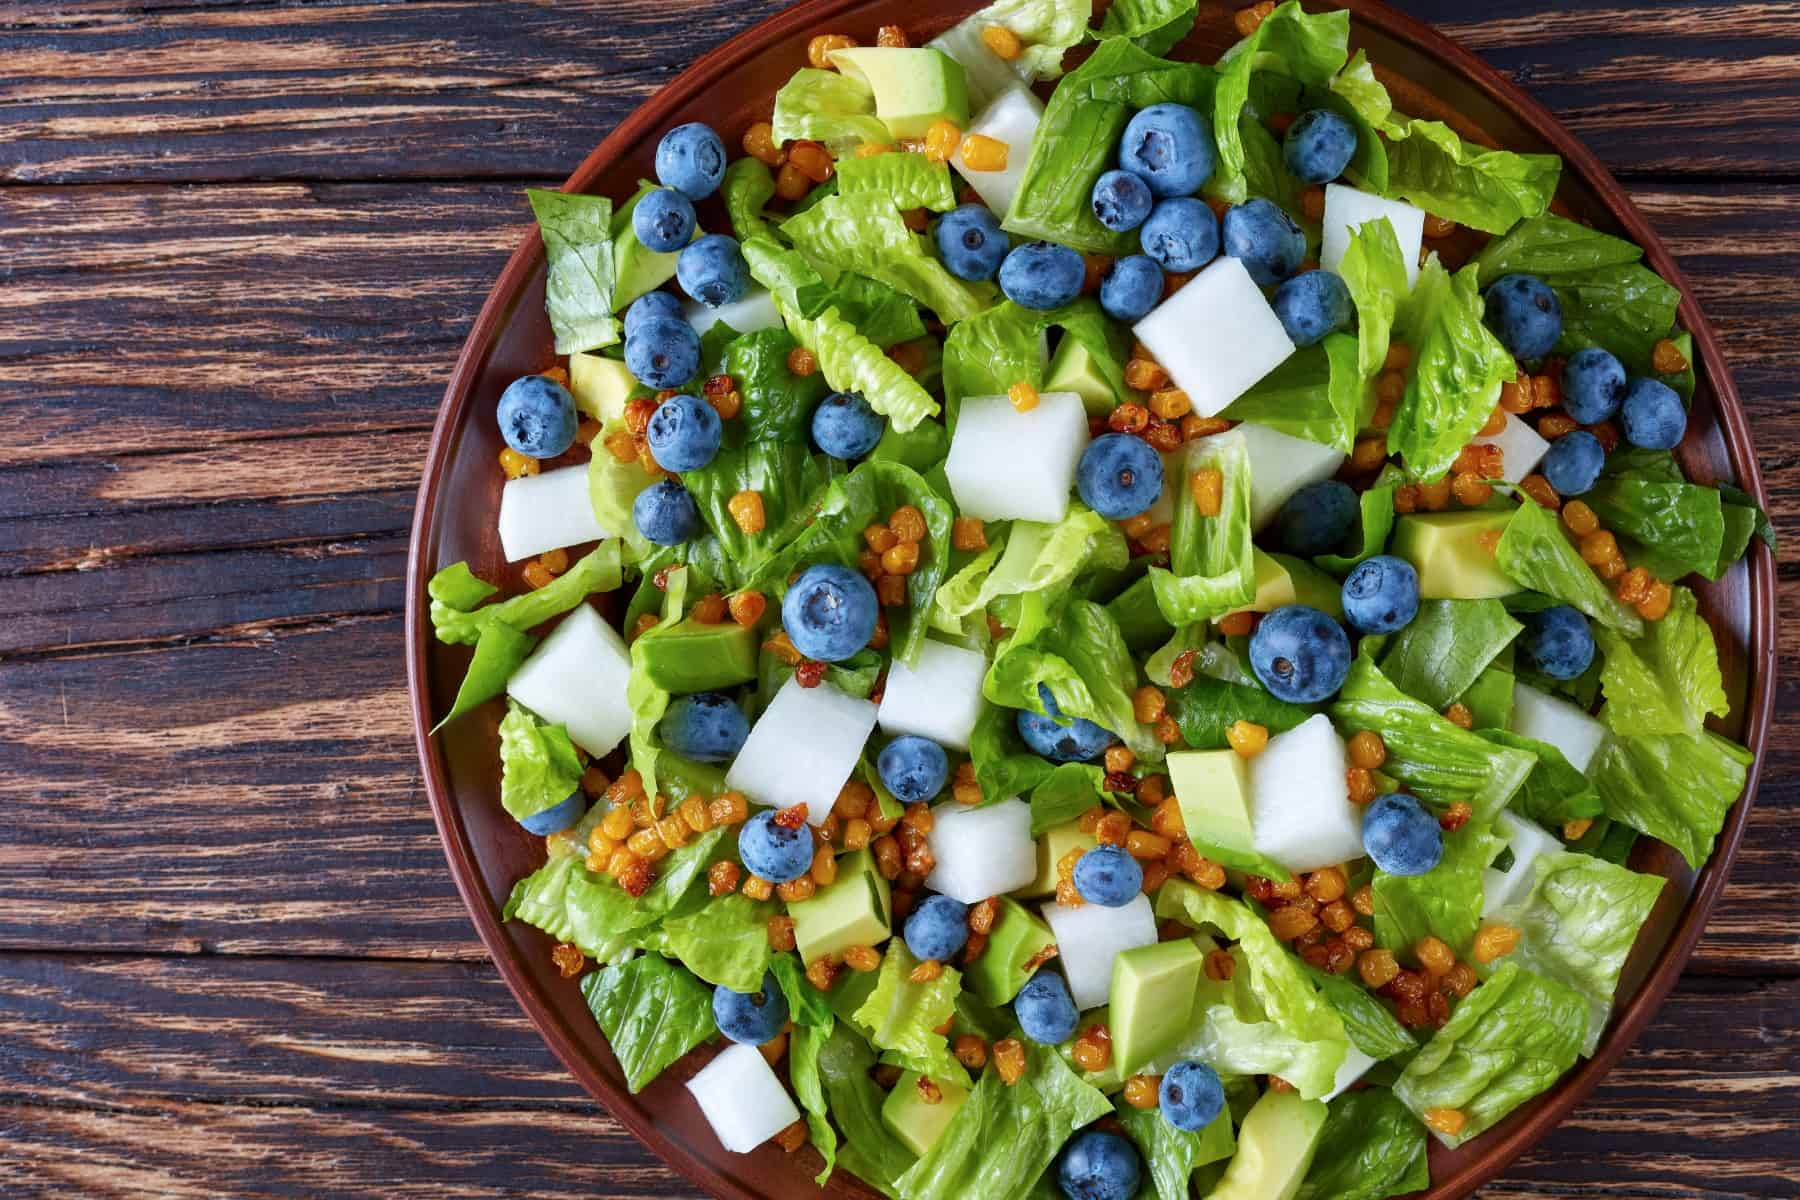 Mexican Salad with Blueberries, romaine lettuce leaves, jicama, roasted Corn kernels and Avocado on a clay plate on an old rustic wooden table, view from above, close-up, flatlay